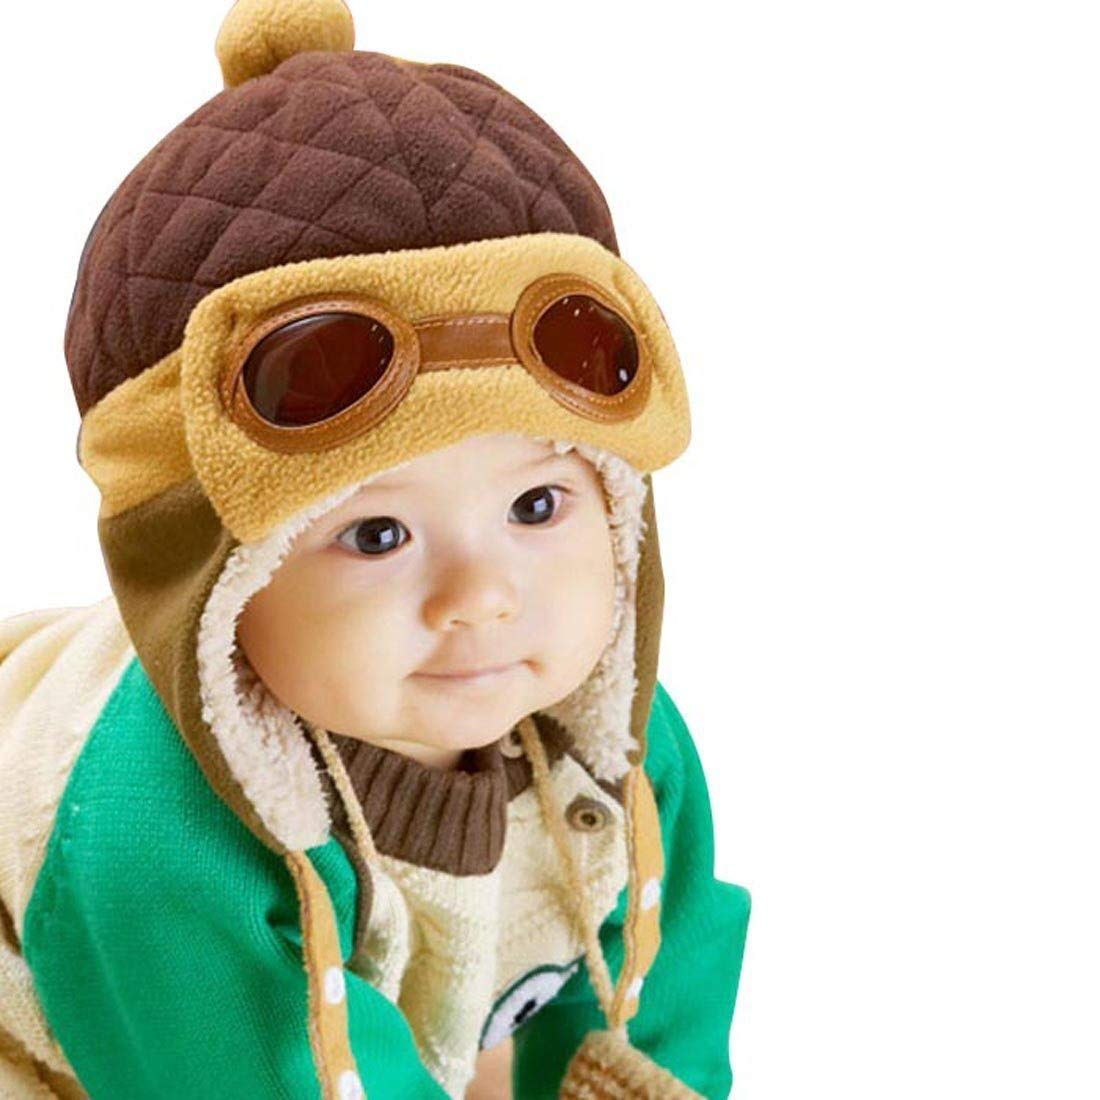 08574d129fe Aisence Toddlers Cool Baby Boy Girl Kids Infant Winter Pilot Aviator Warm  Cap Hat Beanie Earflap Hats Infant (Coffee)  Amazon.in  Home   Kitchen